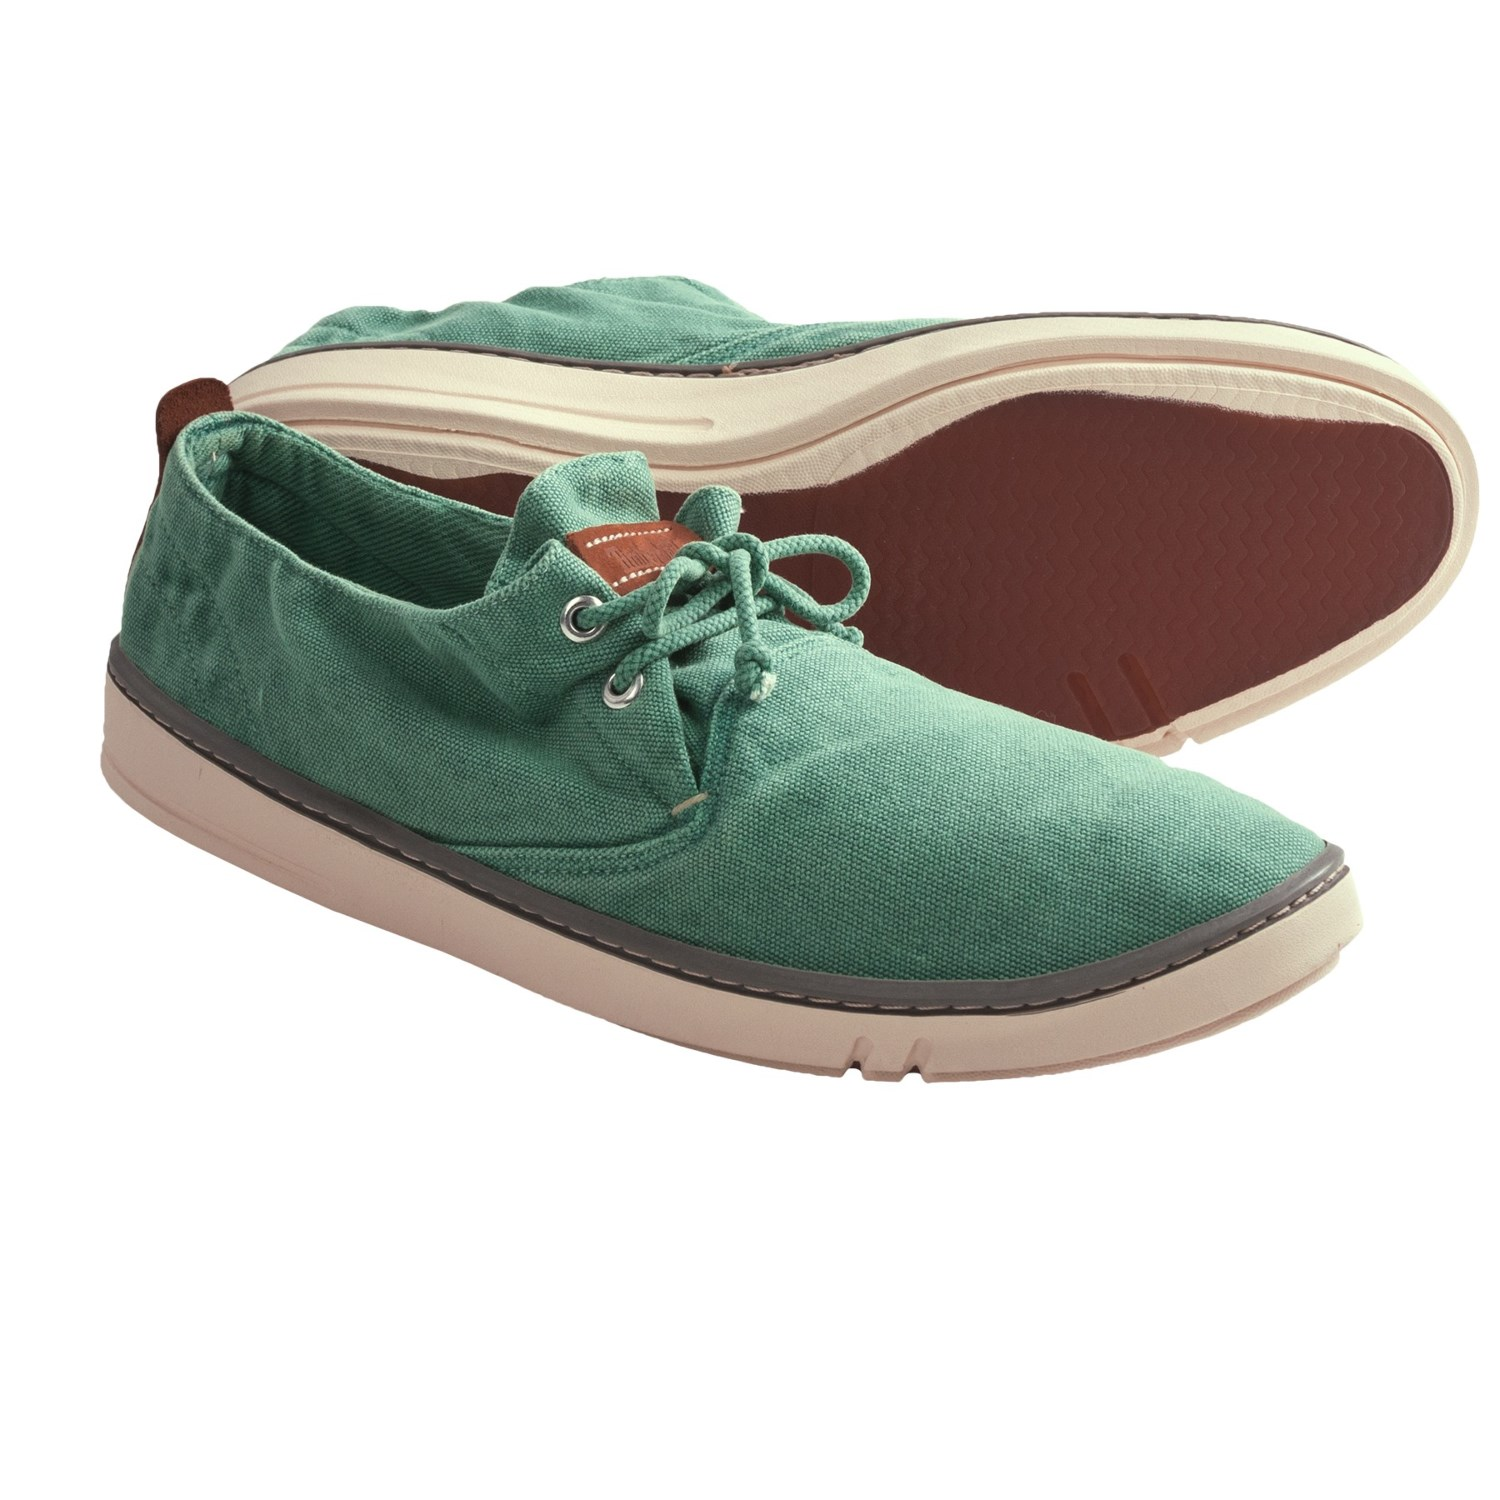 timberland hookset super oxford Buy the timberland hempstead moc toe super oxford shoes for men and more quality fishing, hunting and outdoor gear at bass pro shops.